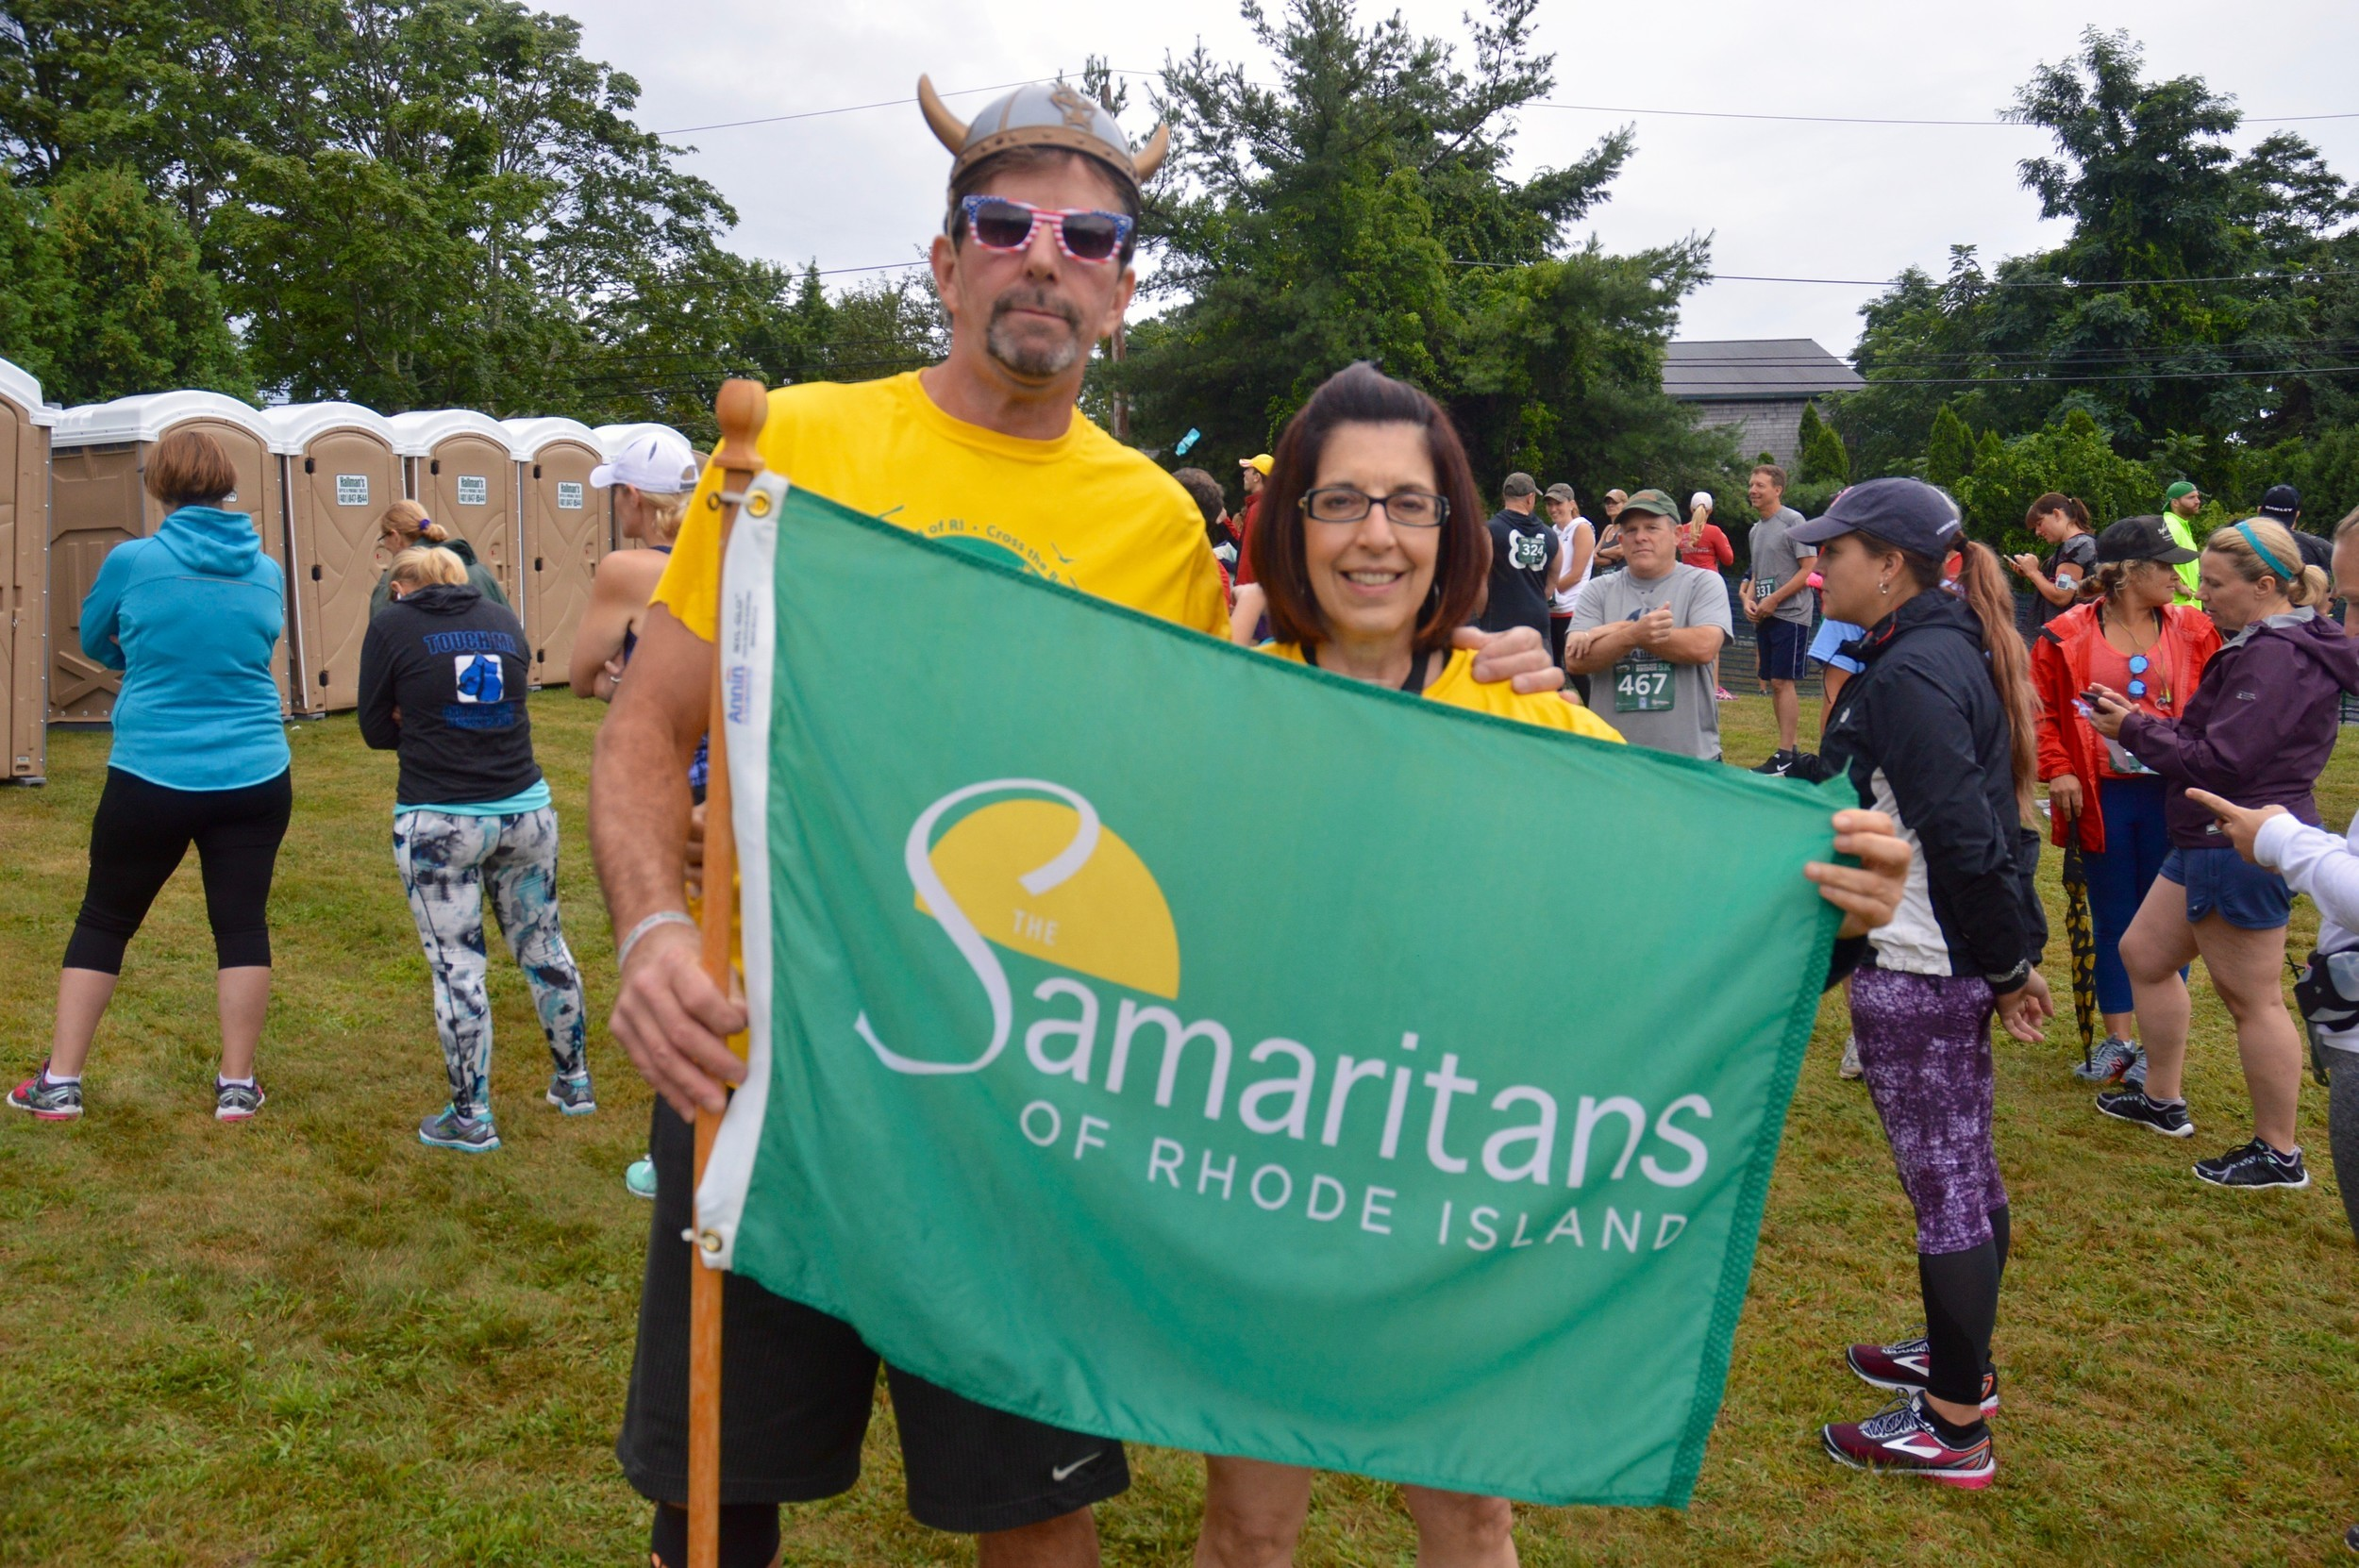 Bryan Ganley and Denise Panichas, executive director of the Samaritans of Rhode Island, just before the race.